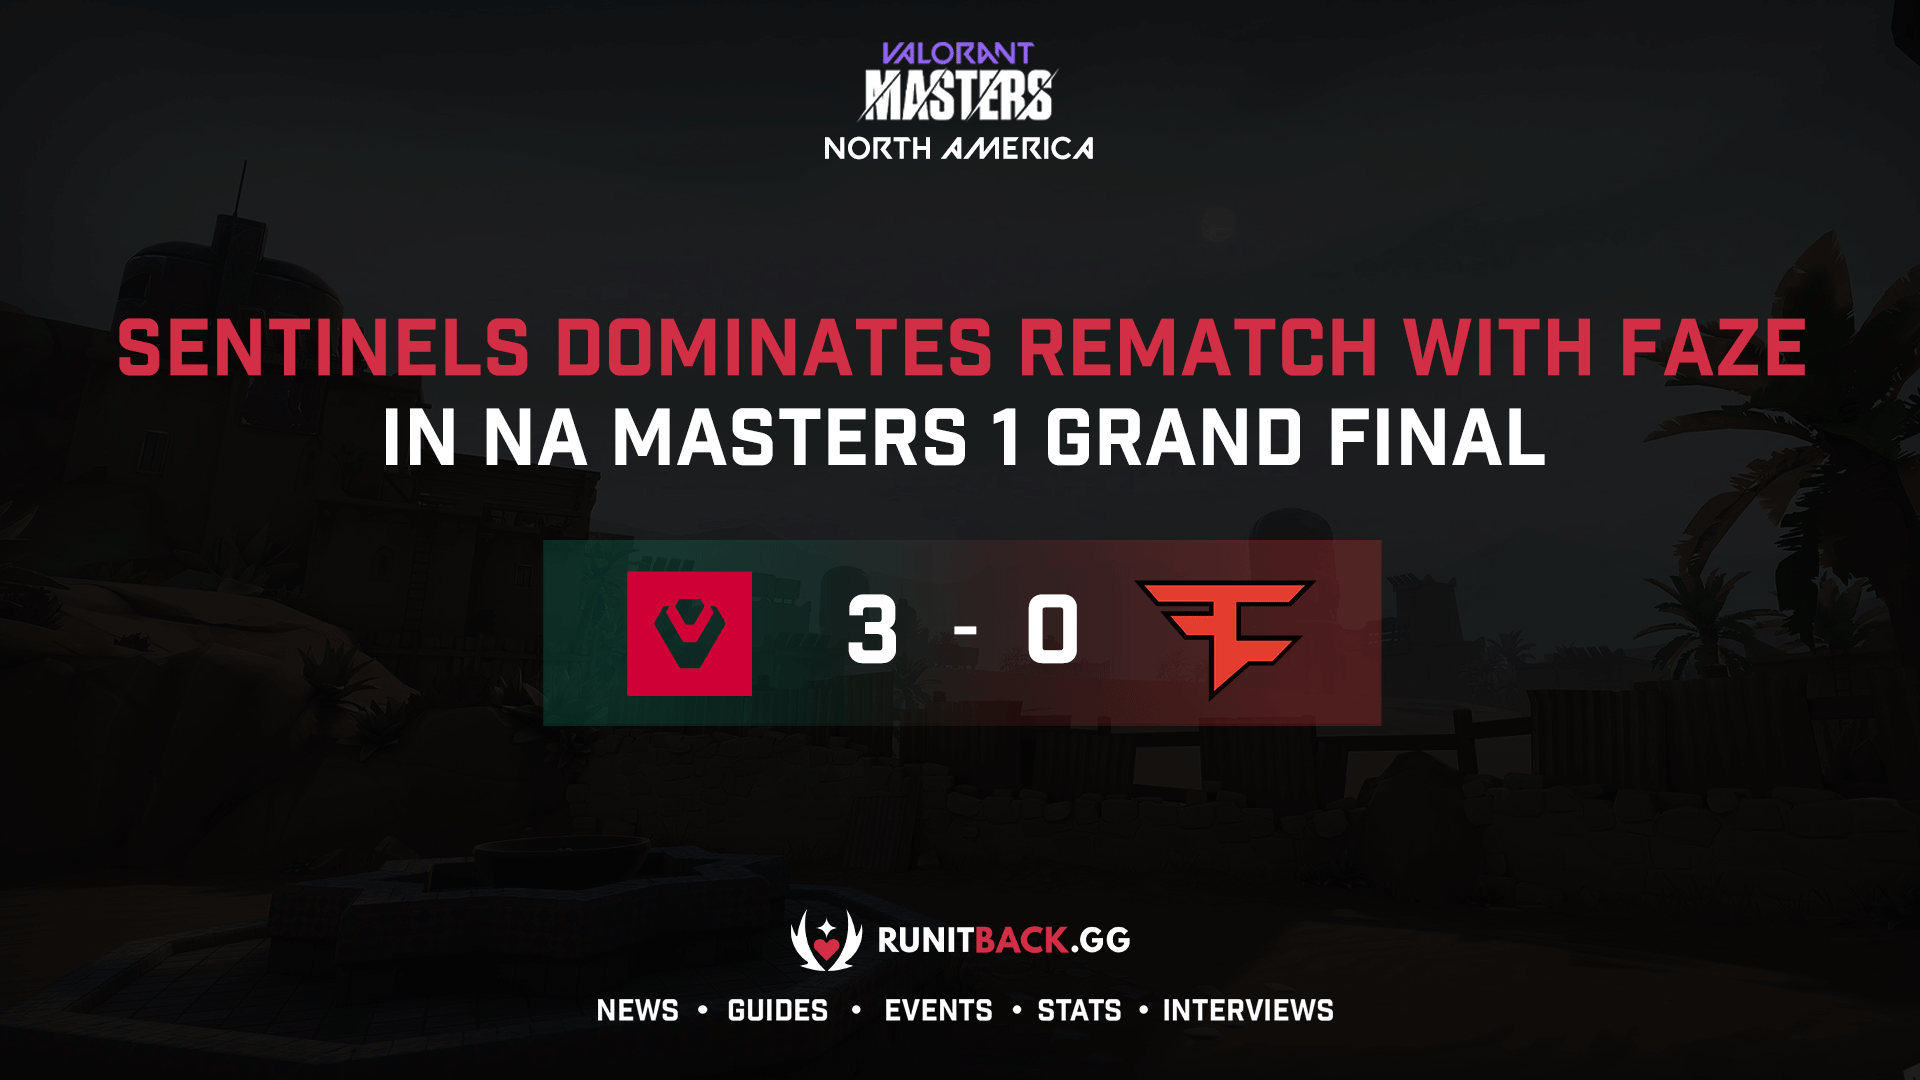 Sentinels dominates rematch with FaZe in NA Masters 1 Grand Final